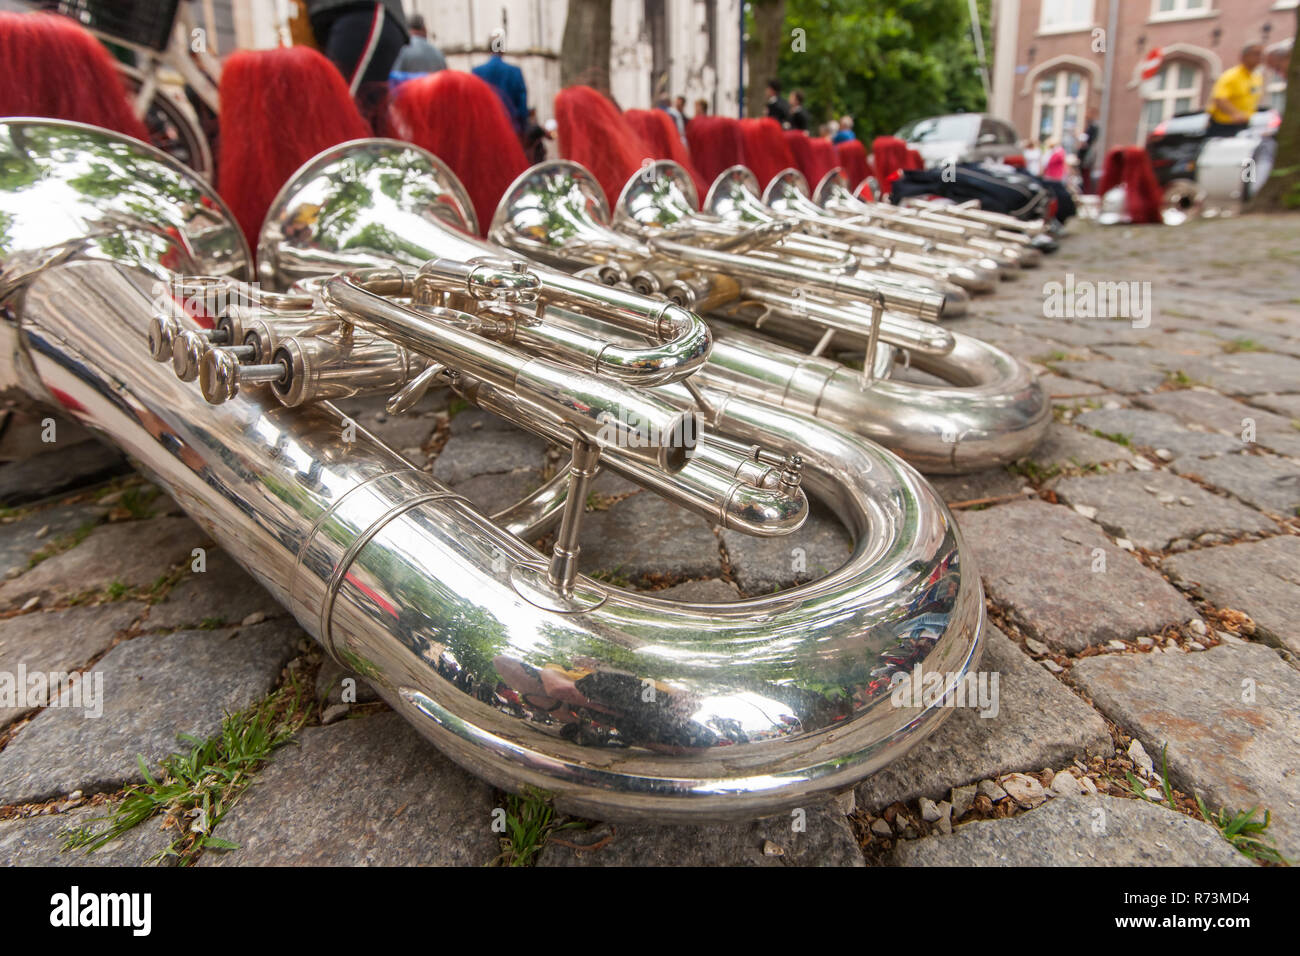 Details from a music, show and marching band. Composition of helmets and wind instruments, baritone on the street. - Stock Image